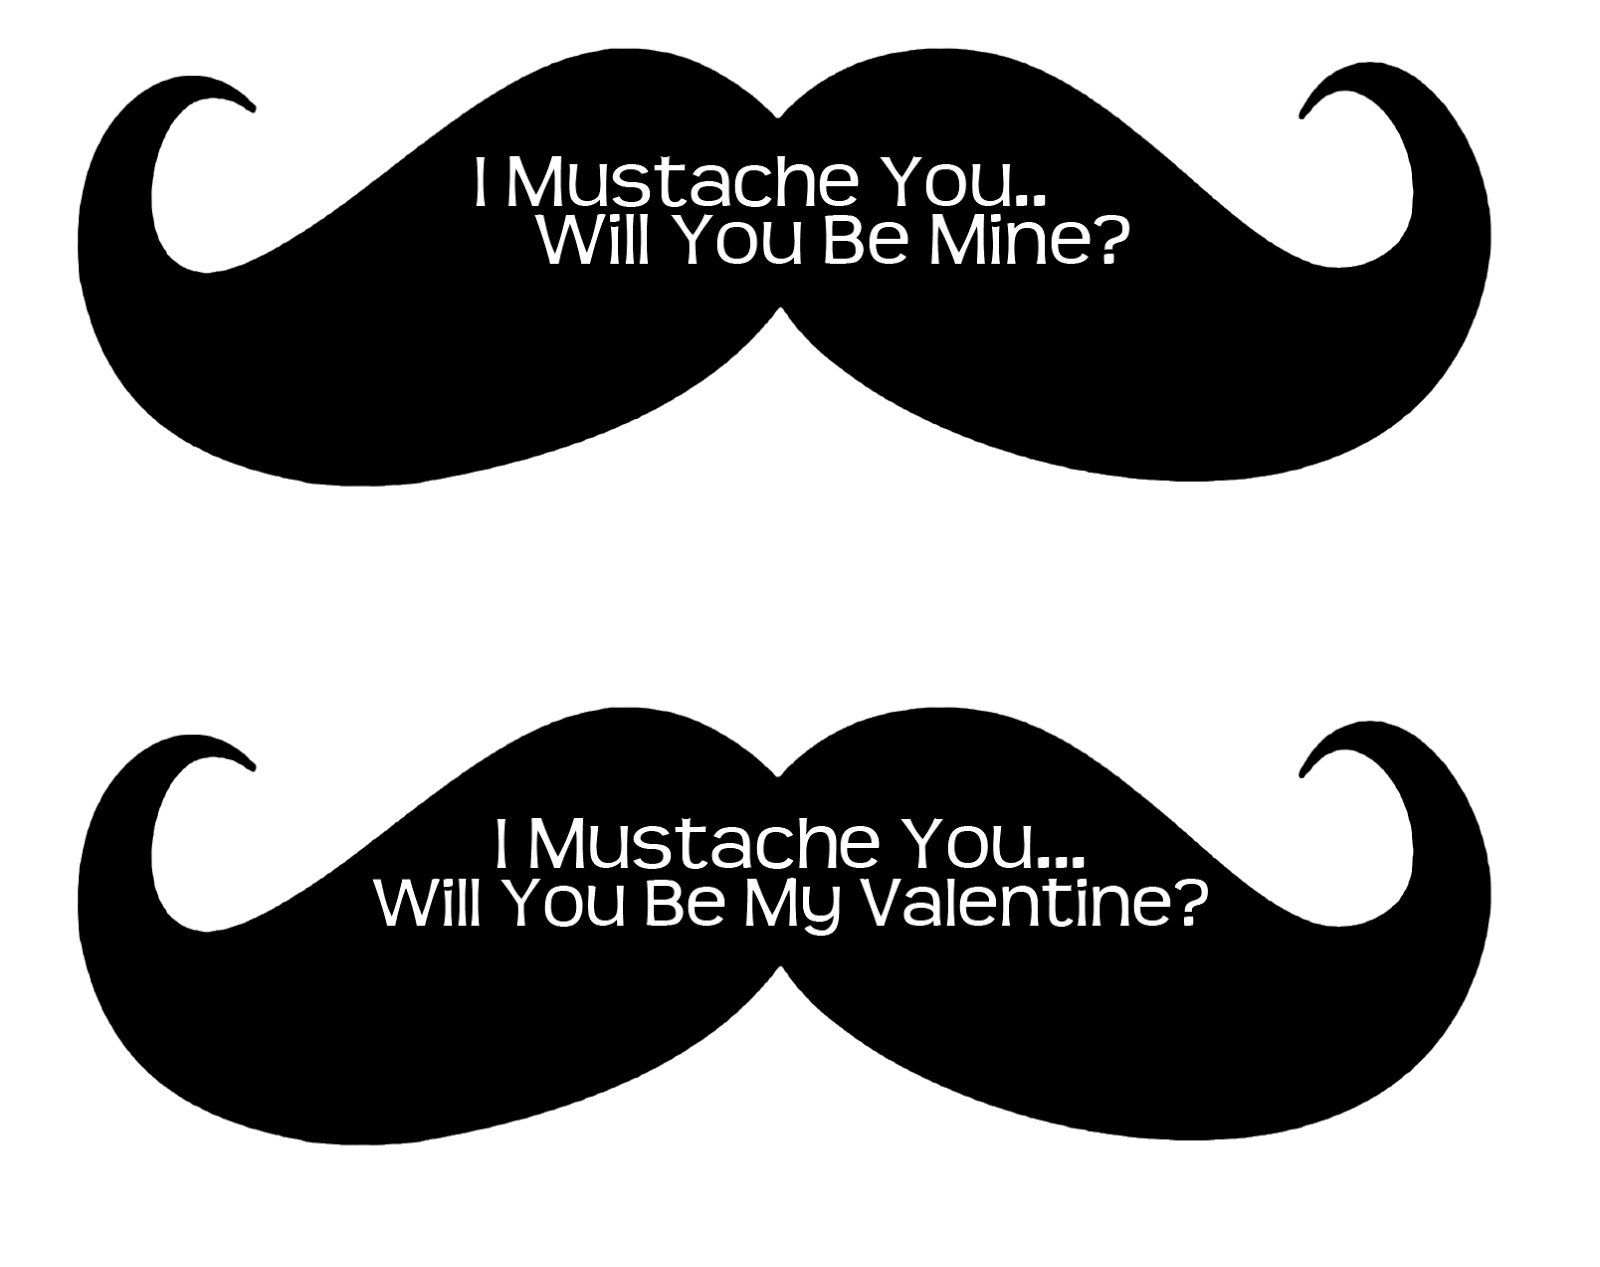 I Mustache You A Question| Free Printable Valentines | Frugalful 2.0 - Free Printable Mustache